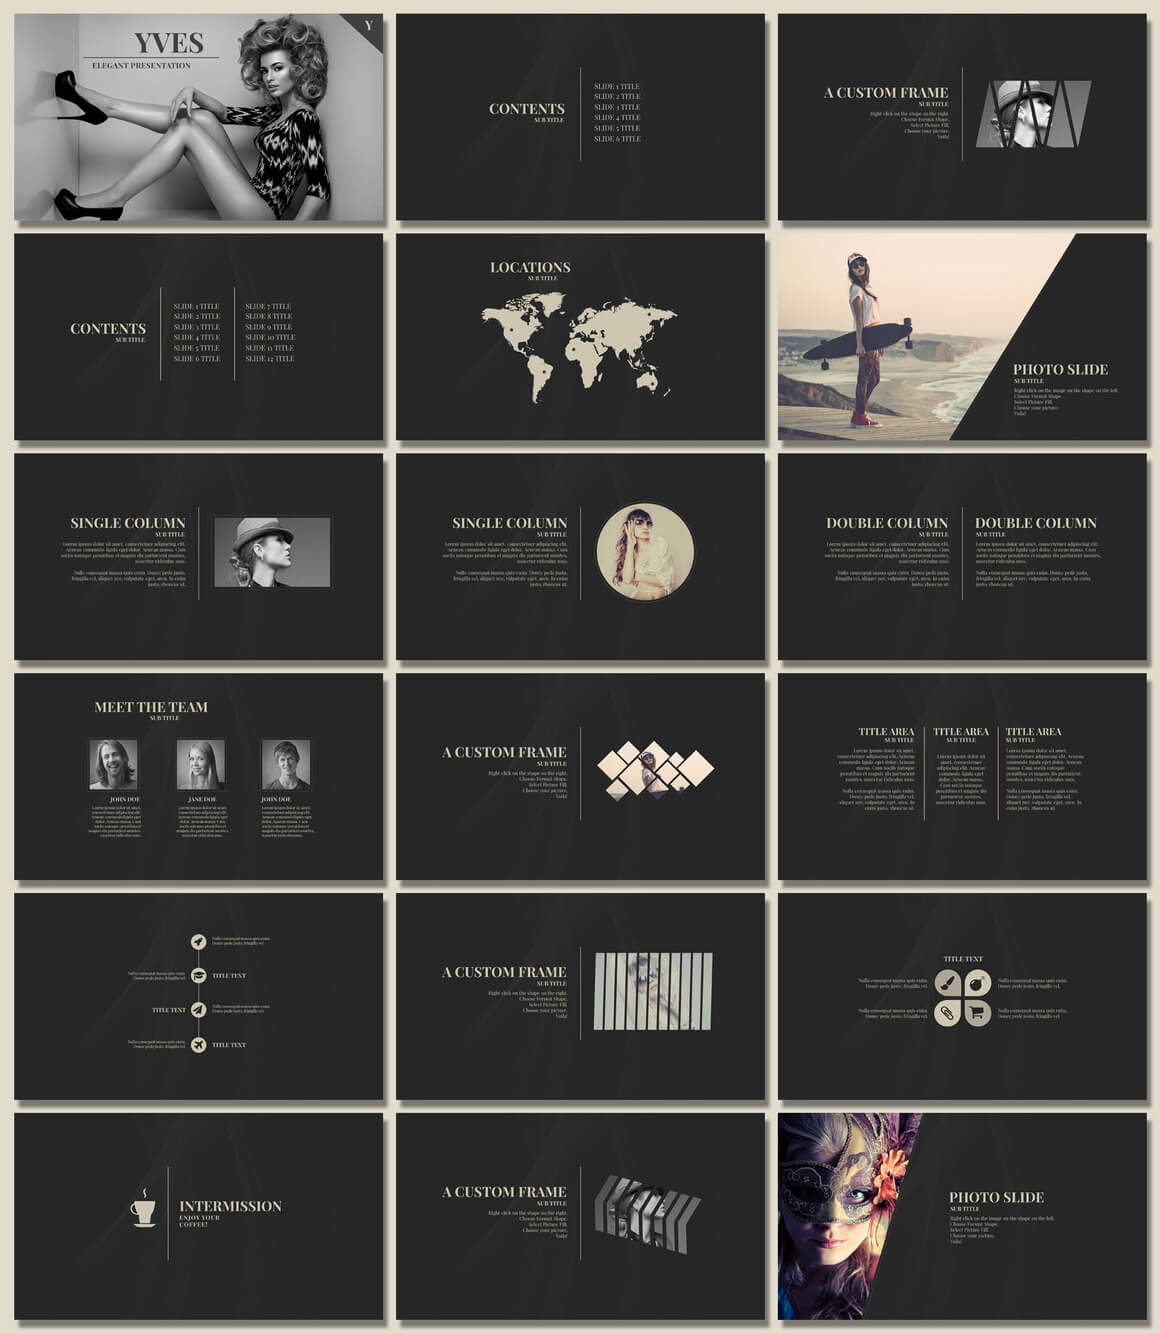 20 Outstanding Professional Powerpoint Templates For Your Next Project Inspirationfeed